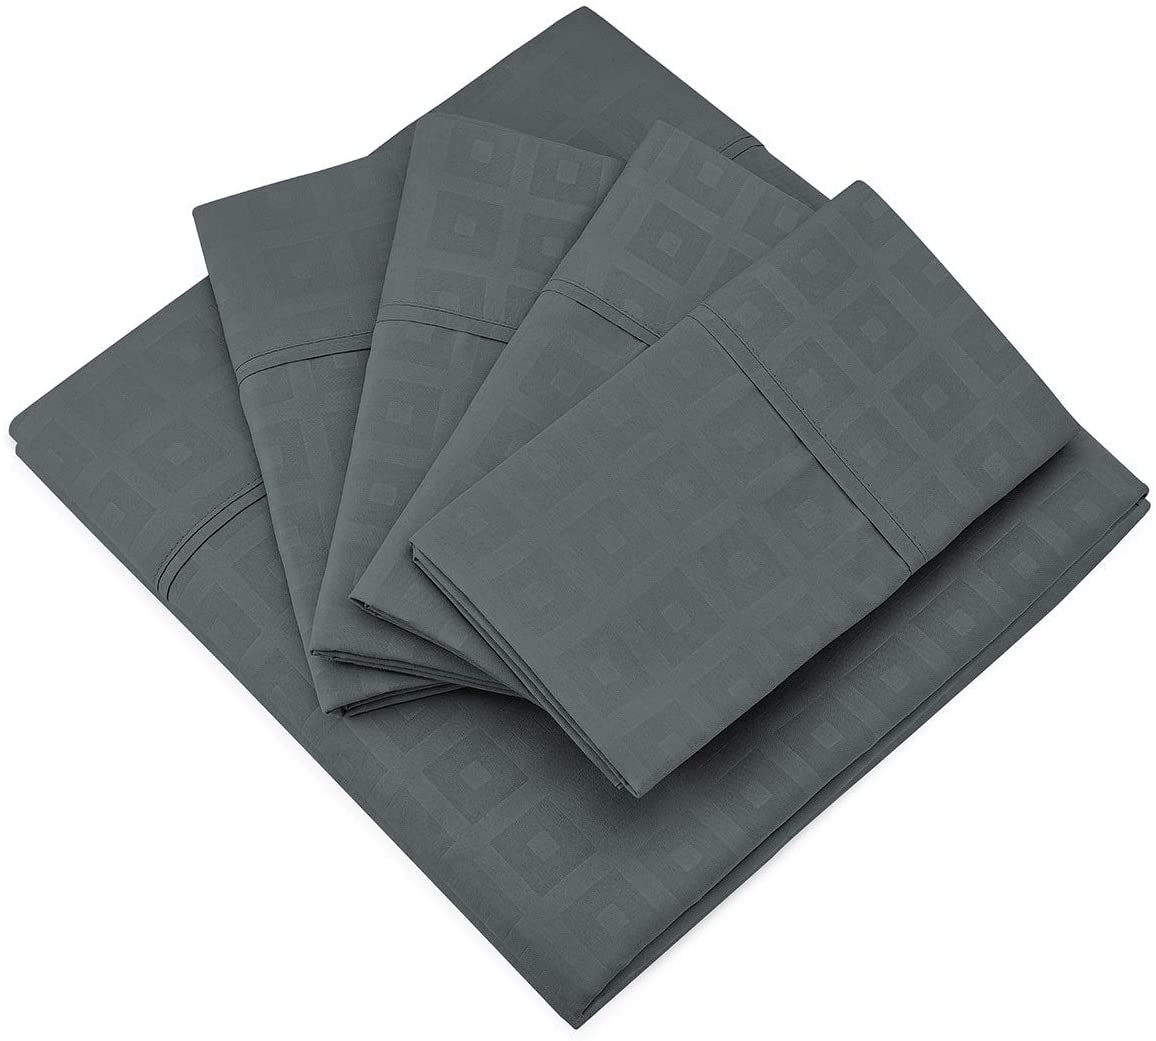 Cosy House Collection King Size Sheets Set - 6 Piece - King Sheets - Silky Soft - Hypoallergenic - Deep Pocket - Elegant Patterns - Stain, Fade & Wrinkle Resistant - Grey - Squares